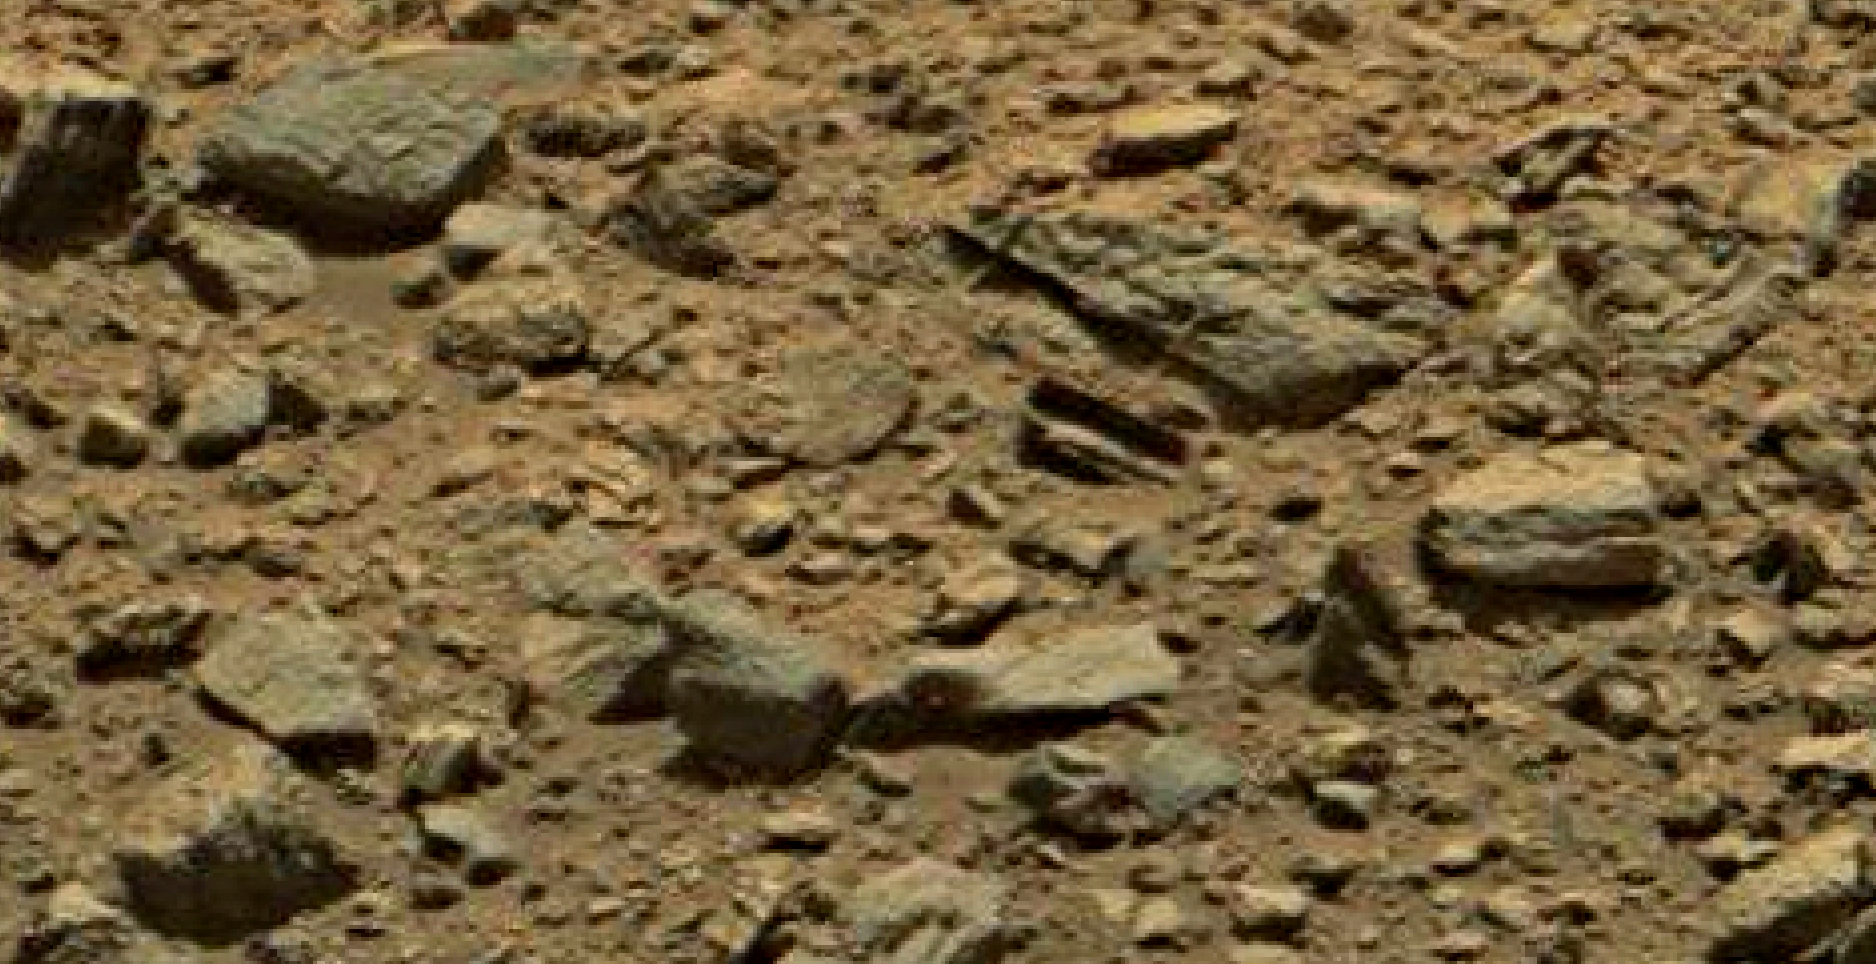 mars sol 1378 anomaly-artifacts 3 was life on mars